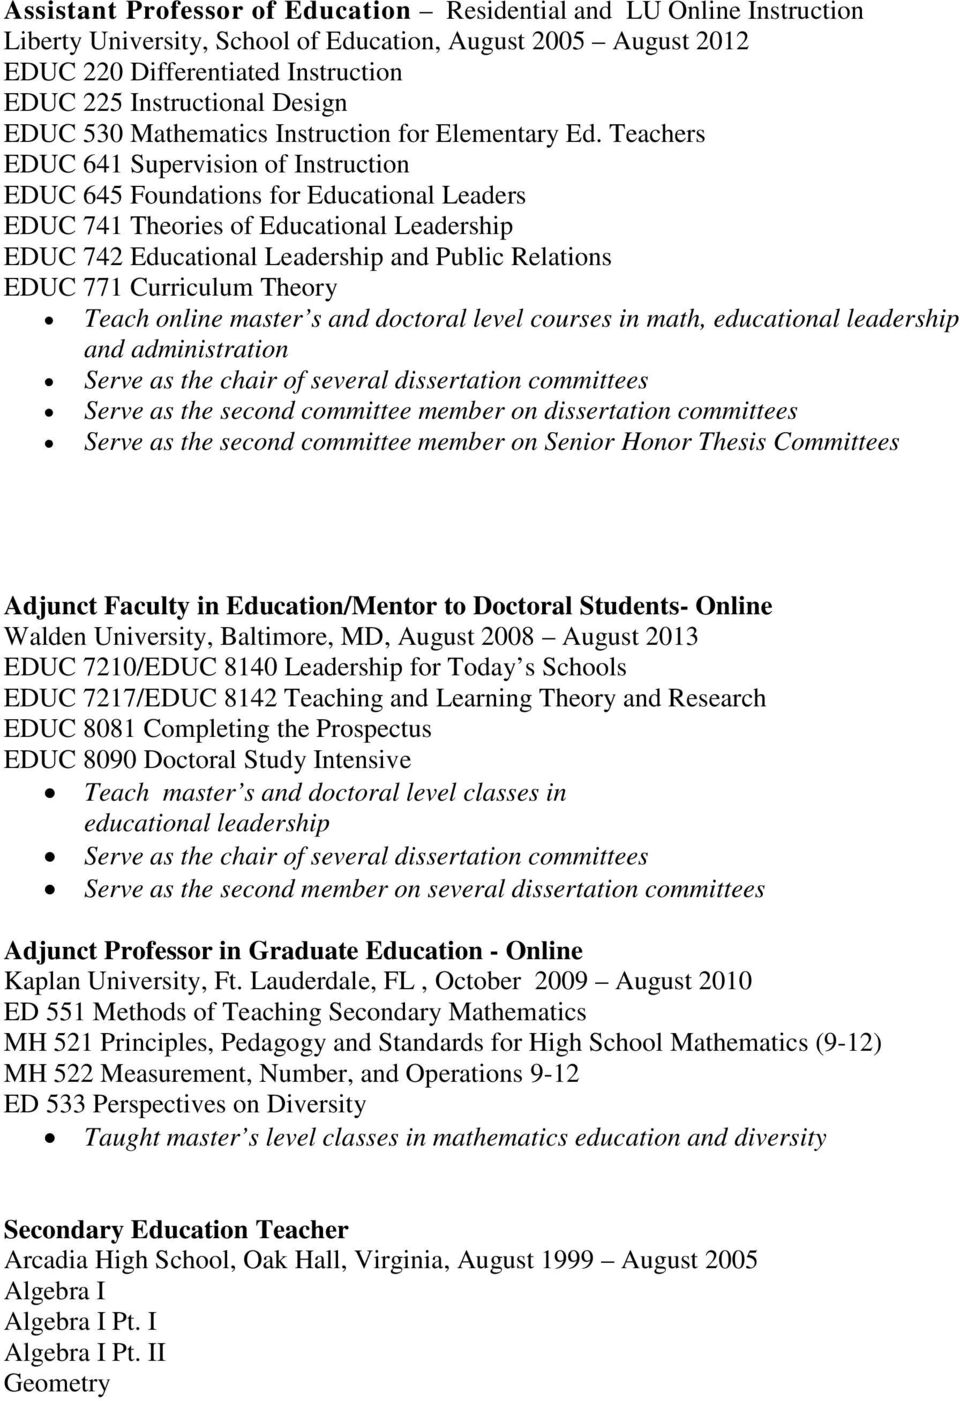 Teachers EDUC 641 Supervision of Instruction EDUC 645 Foundations for Educational Leaders EDUC 741 Theories of Educational Leadership EDUC 742 Educational Leadership and Public Relations EDUC 771